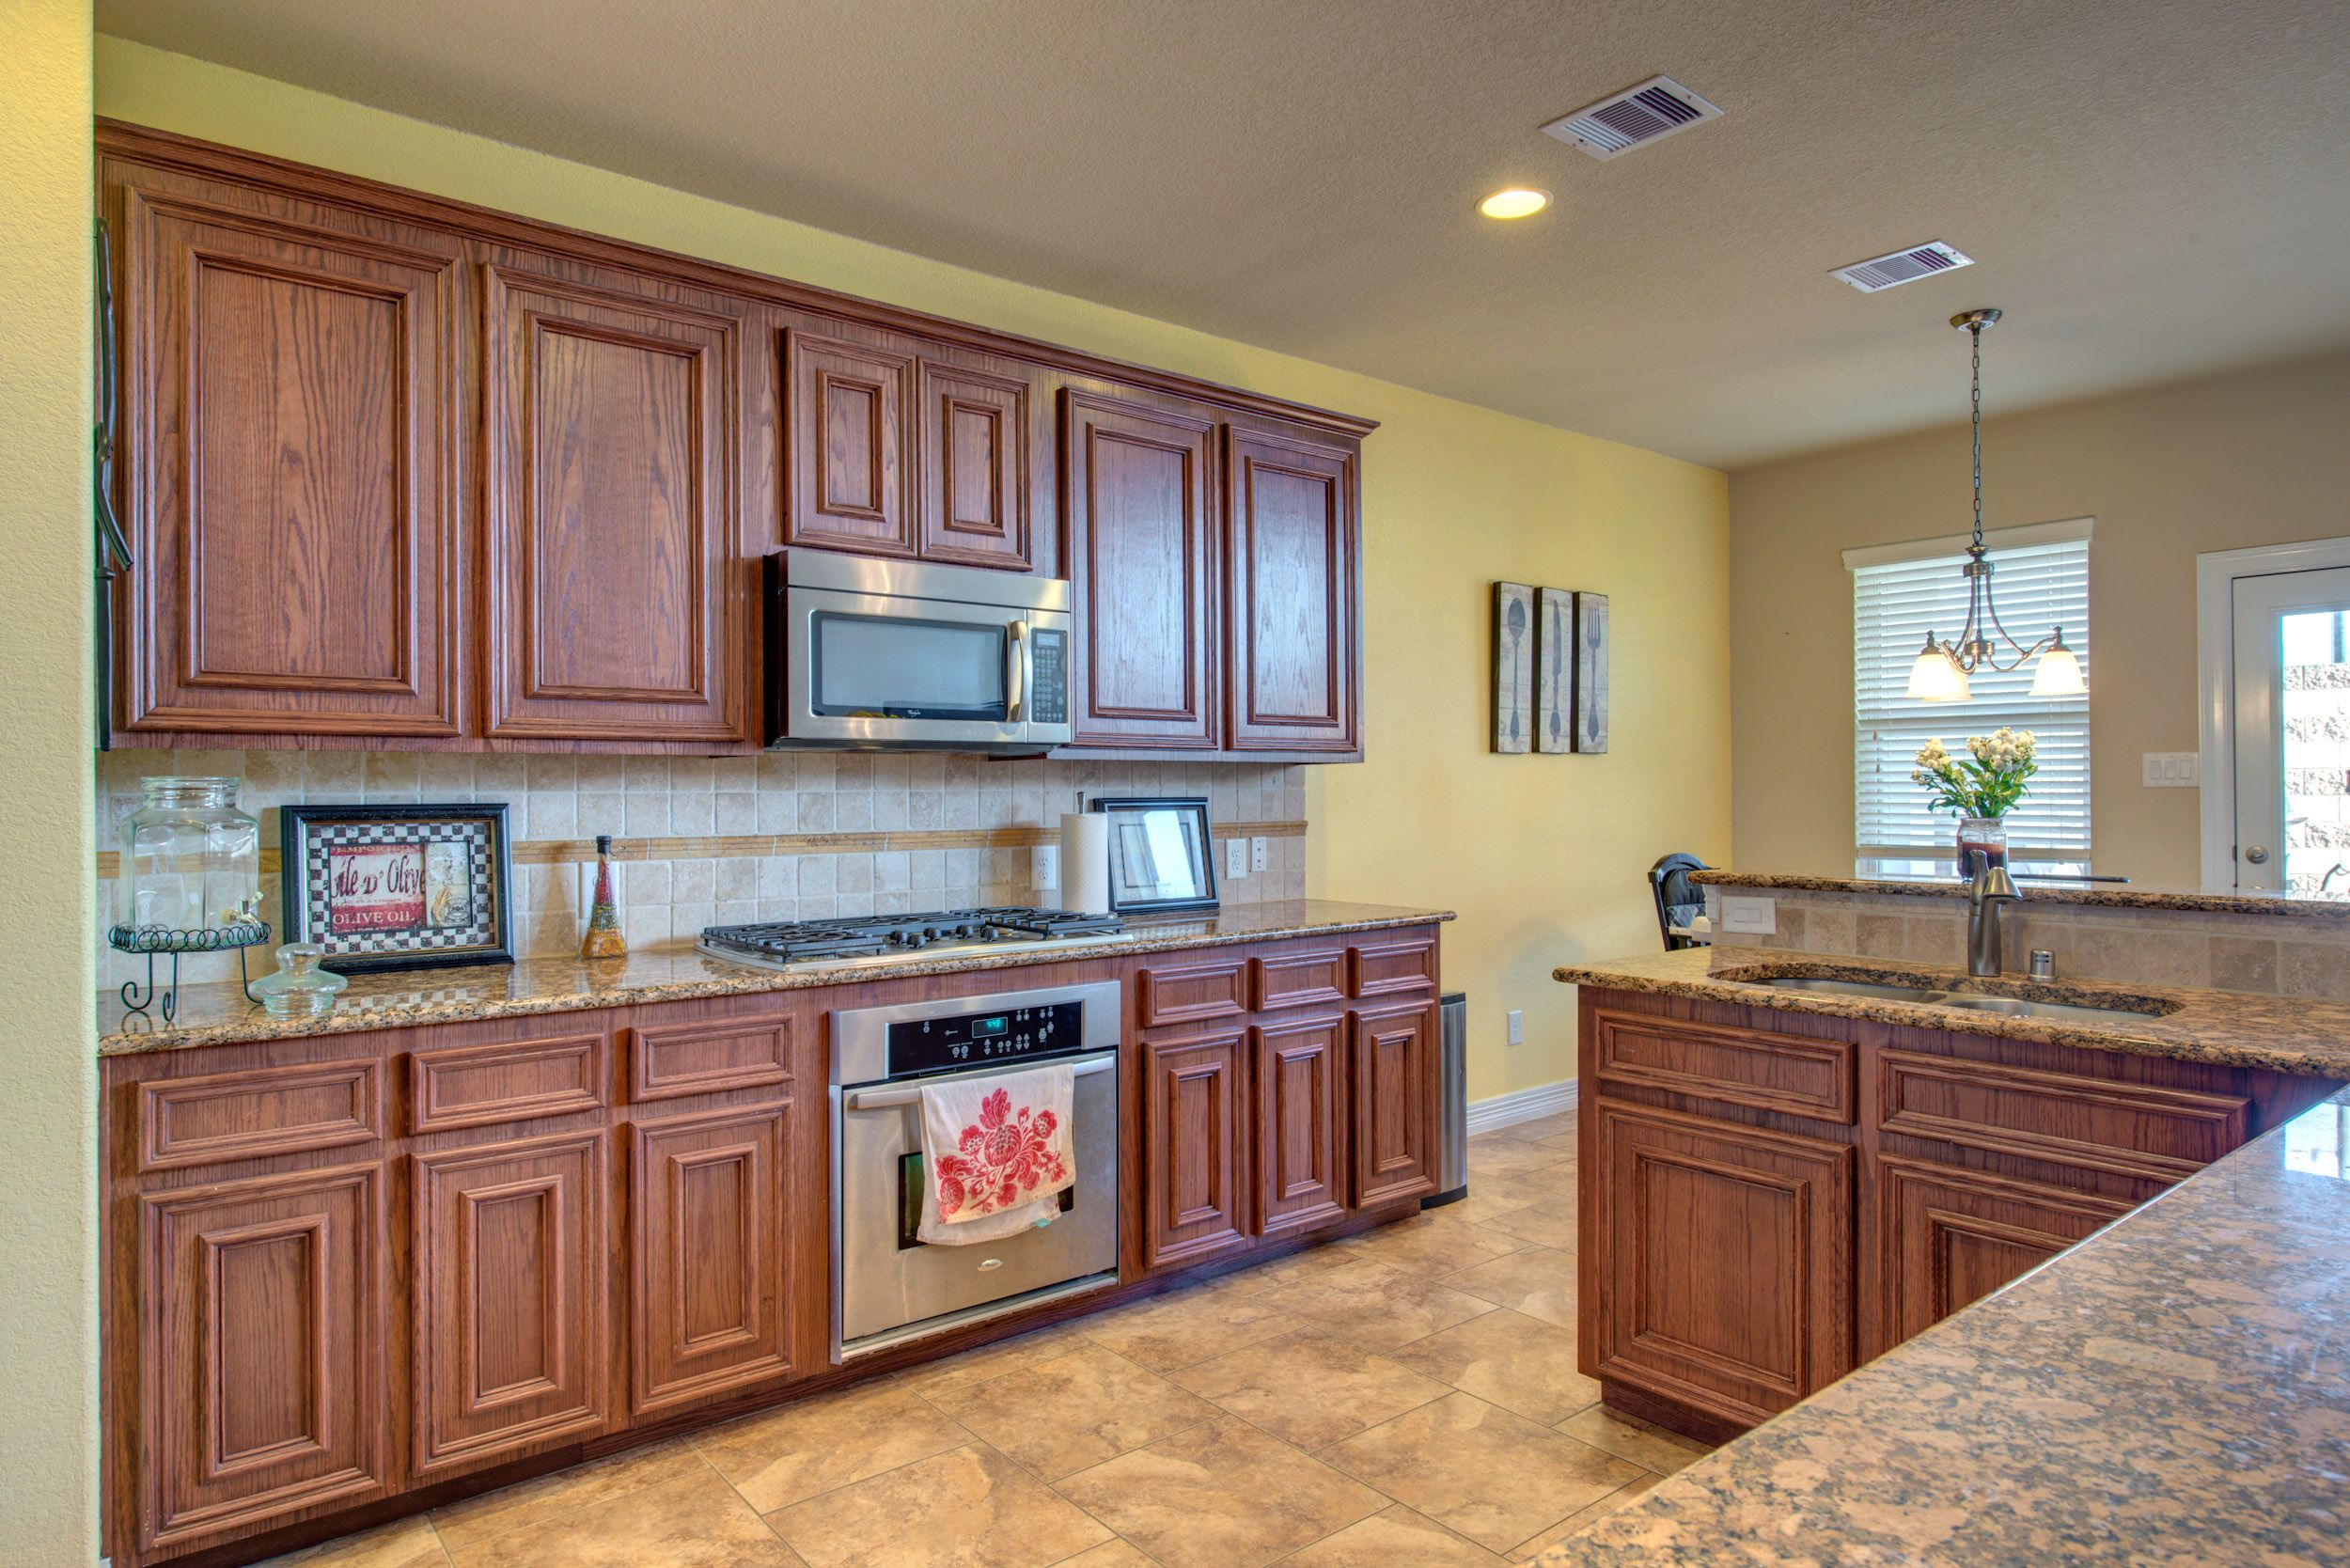 Kitchen Counters | Find homes for sale, Home decor ...